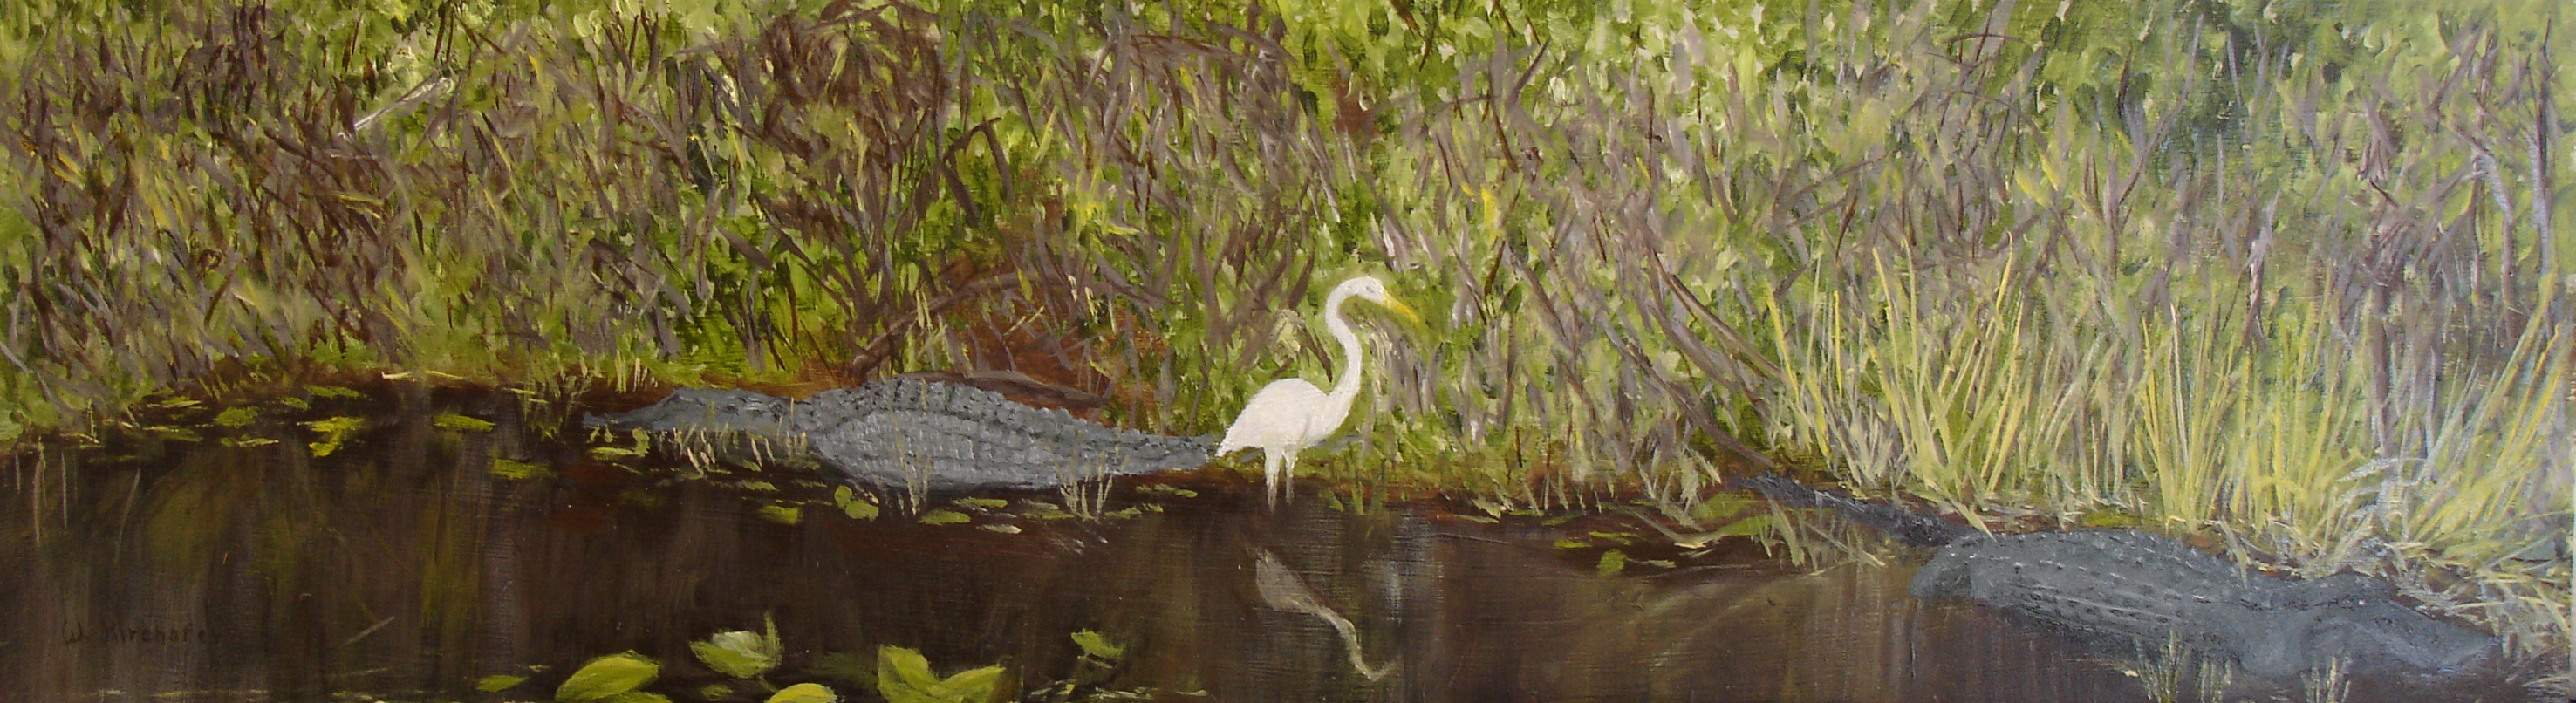 Everglades with alligators and egret_edited